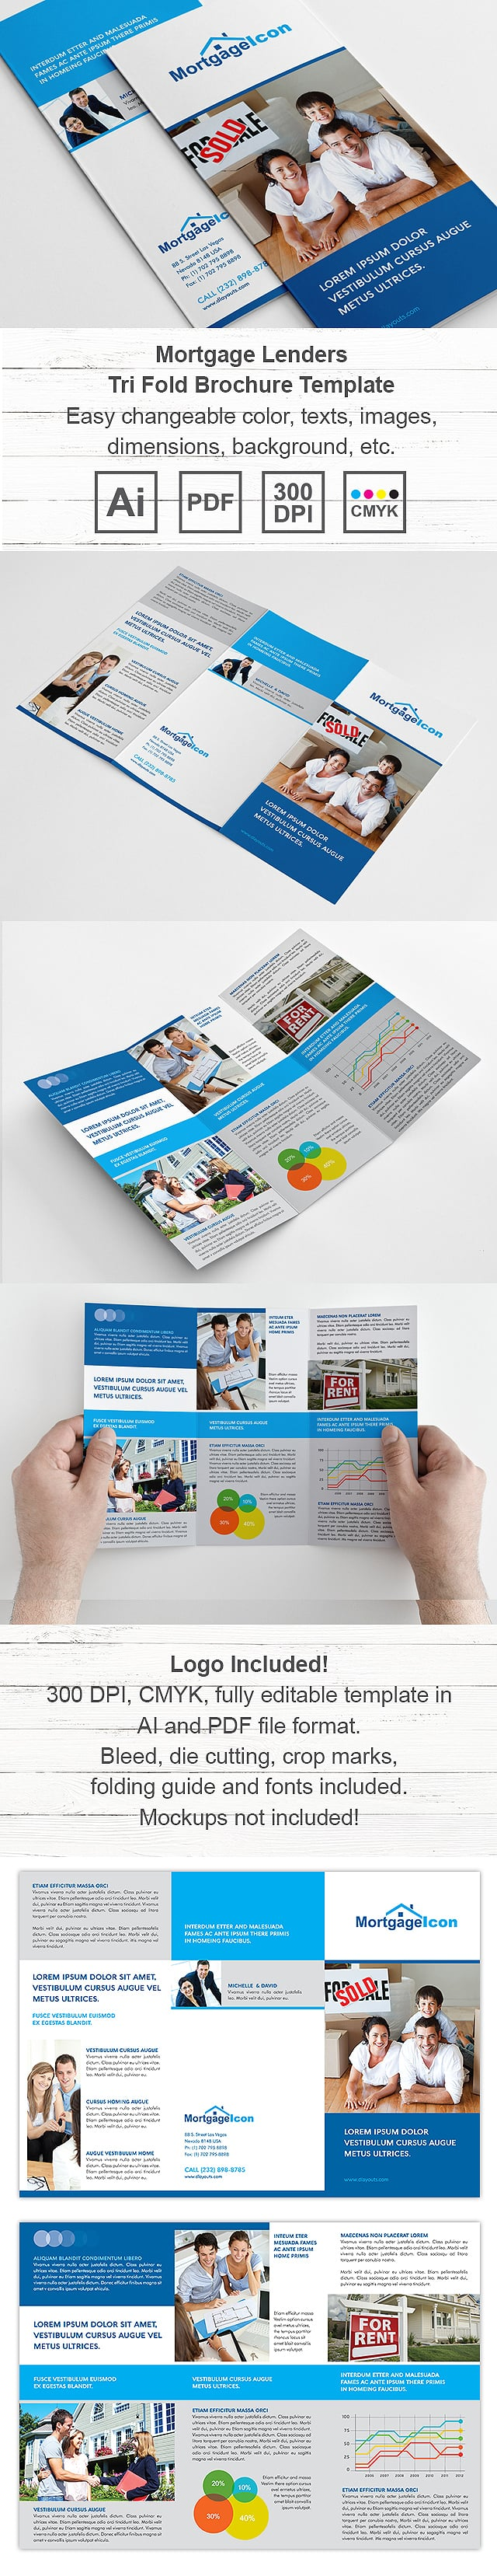 Mortgage Lenders Tri Fold Brochure Template